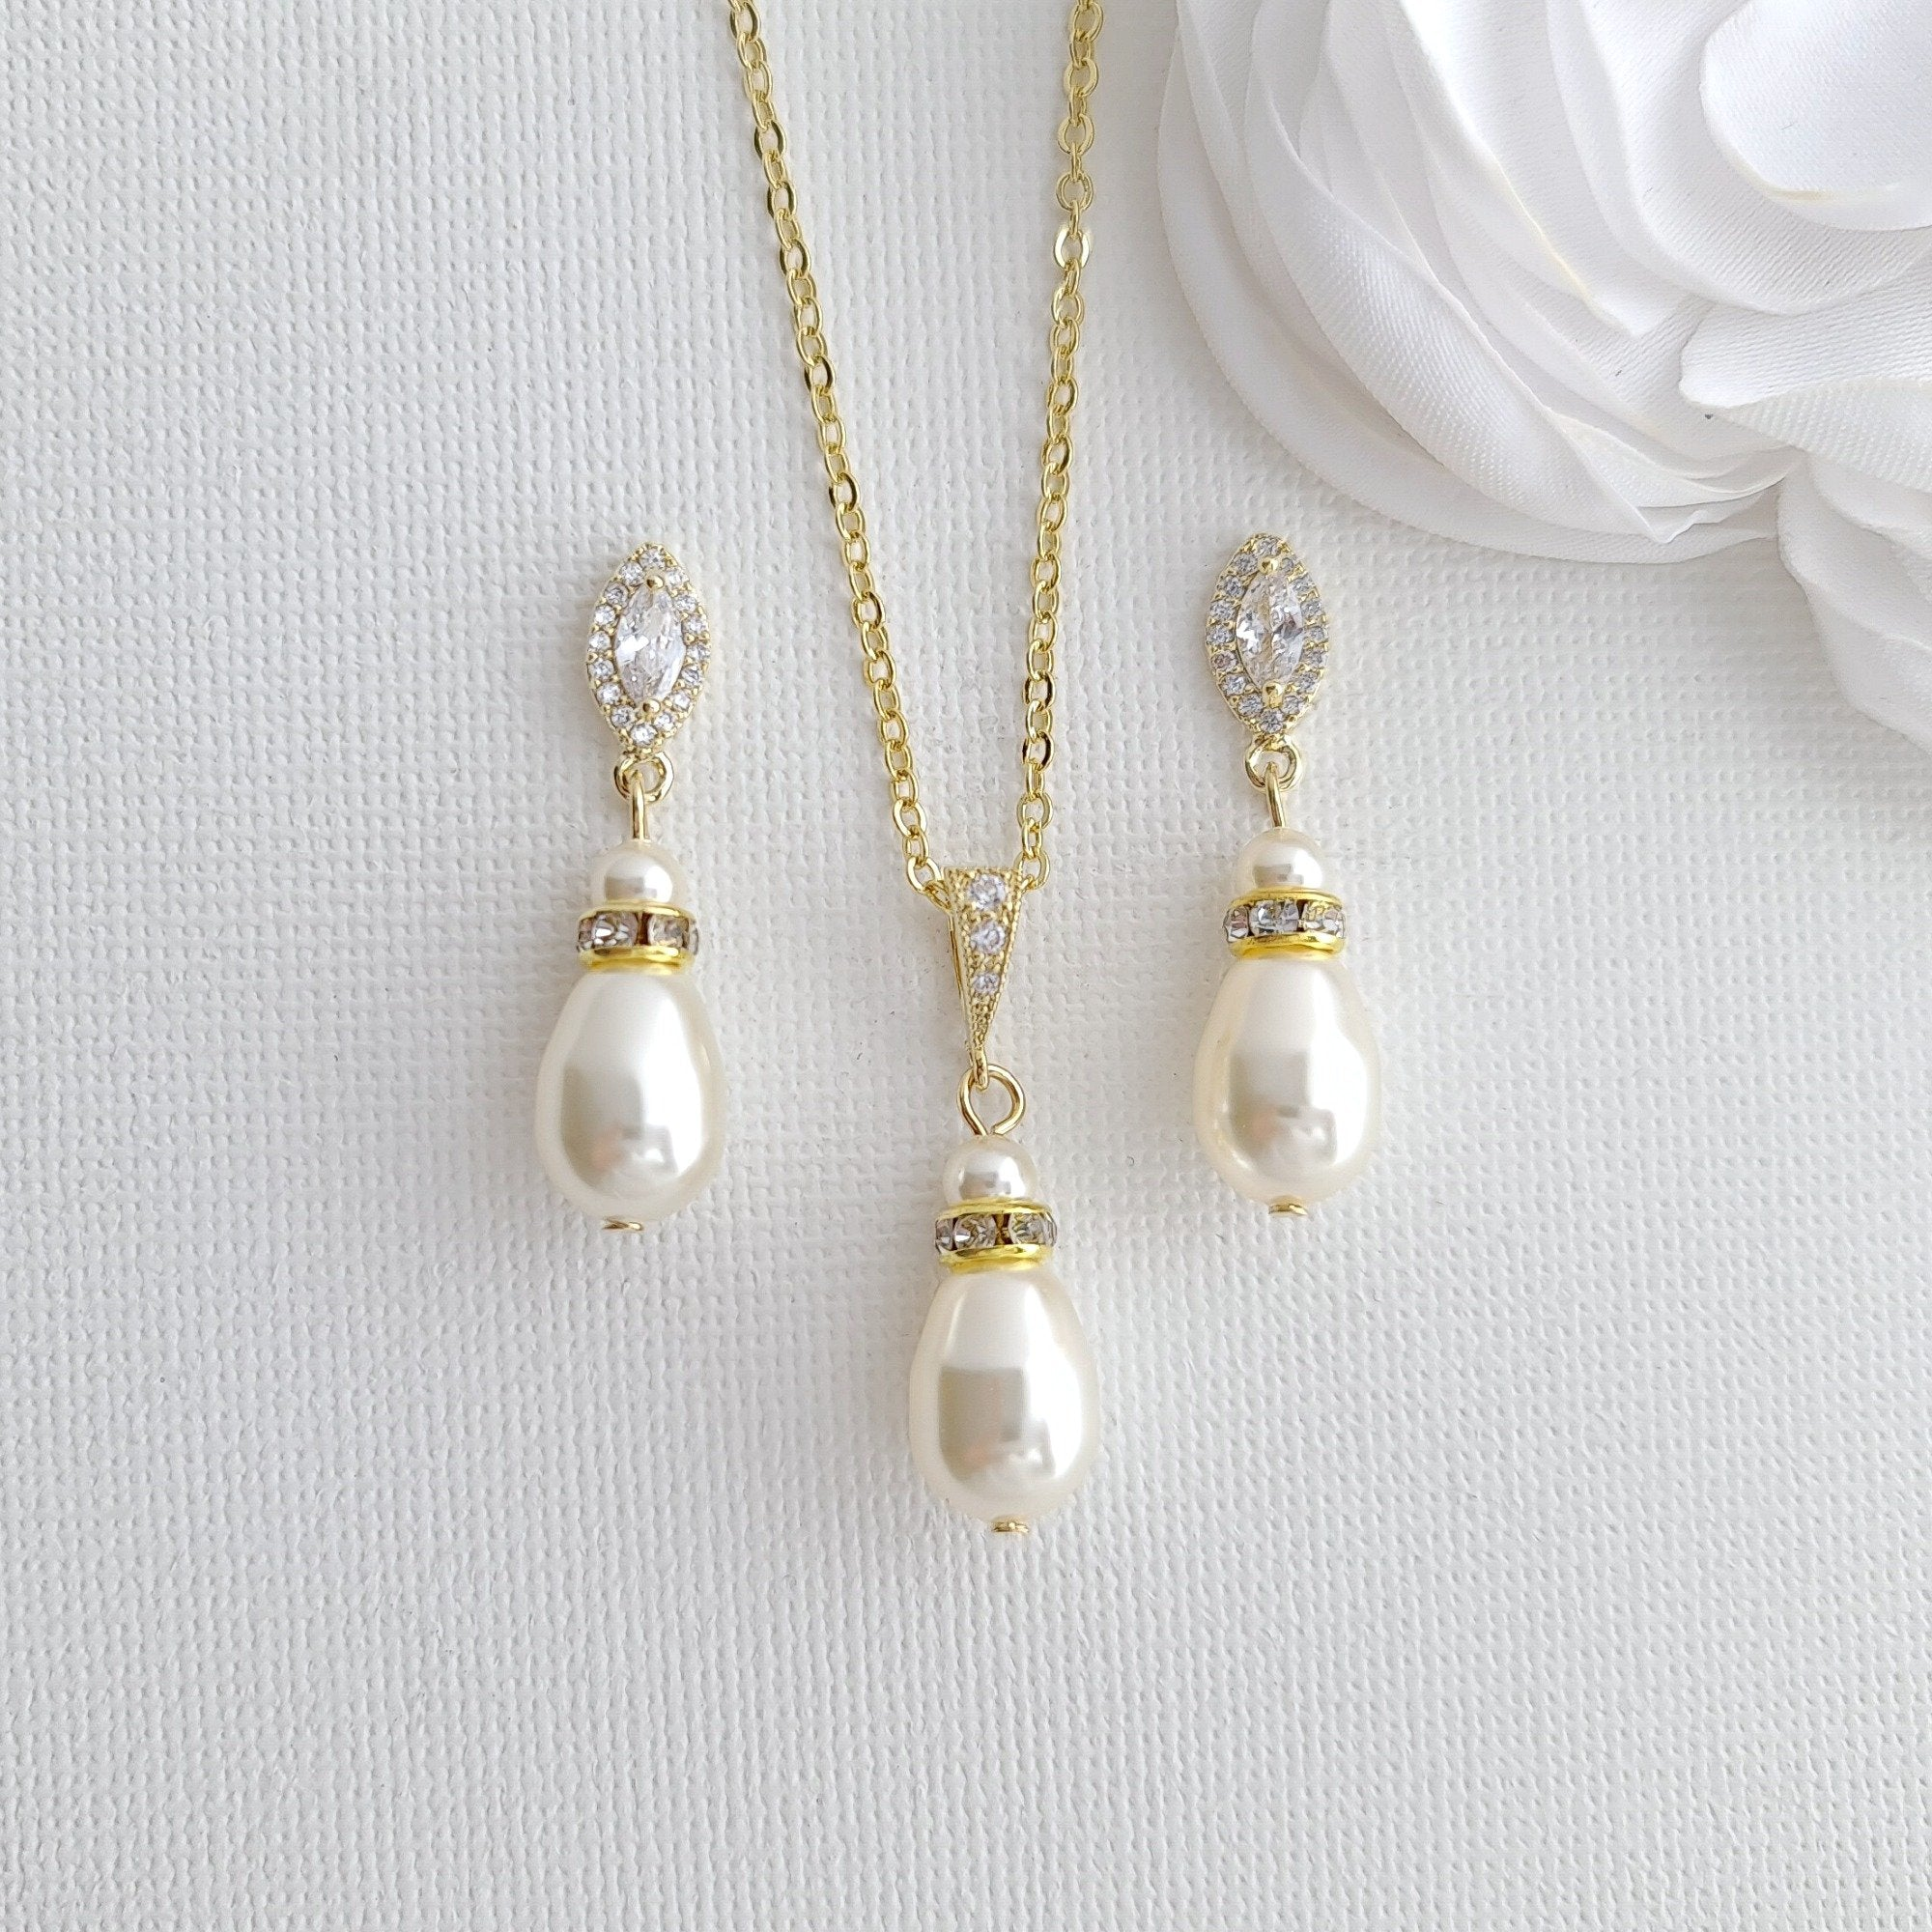 Affordable Pearl Bridesmaid Jewelry Set in Silver Gold Rose Gold Tones- Ella